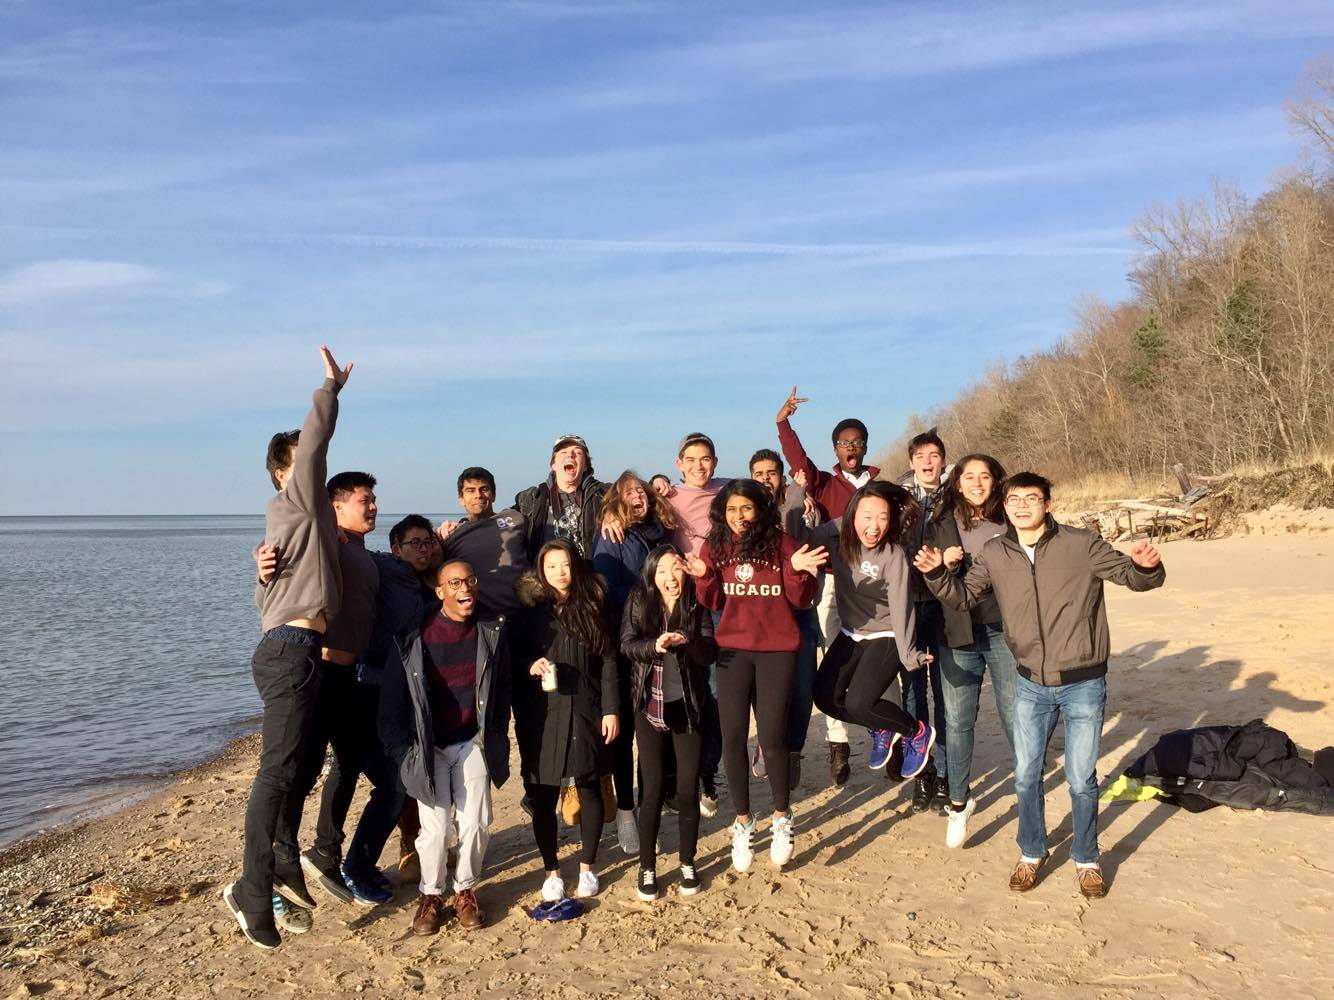 a poorly choreographed photo from ec's annual retreat to michigan